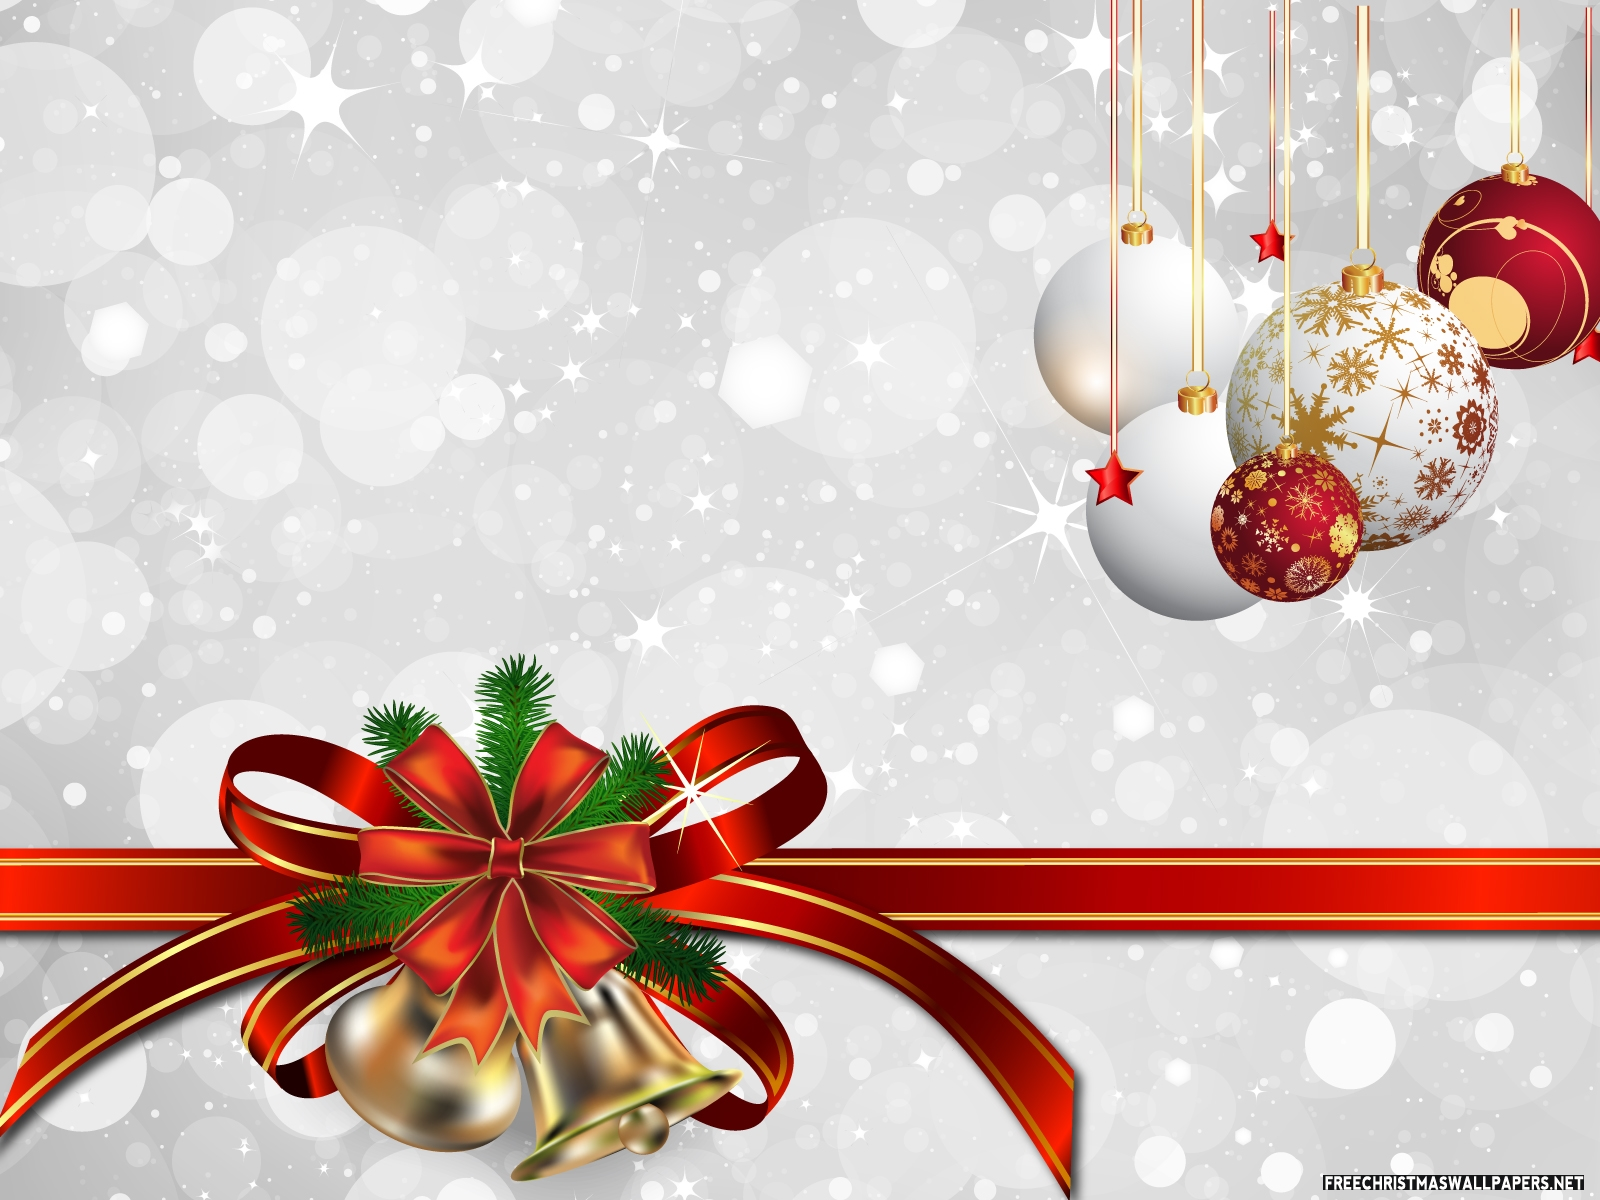 Christmas images christmas hd wallpaper and background for Christmas decorations images